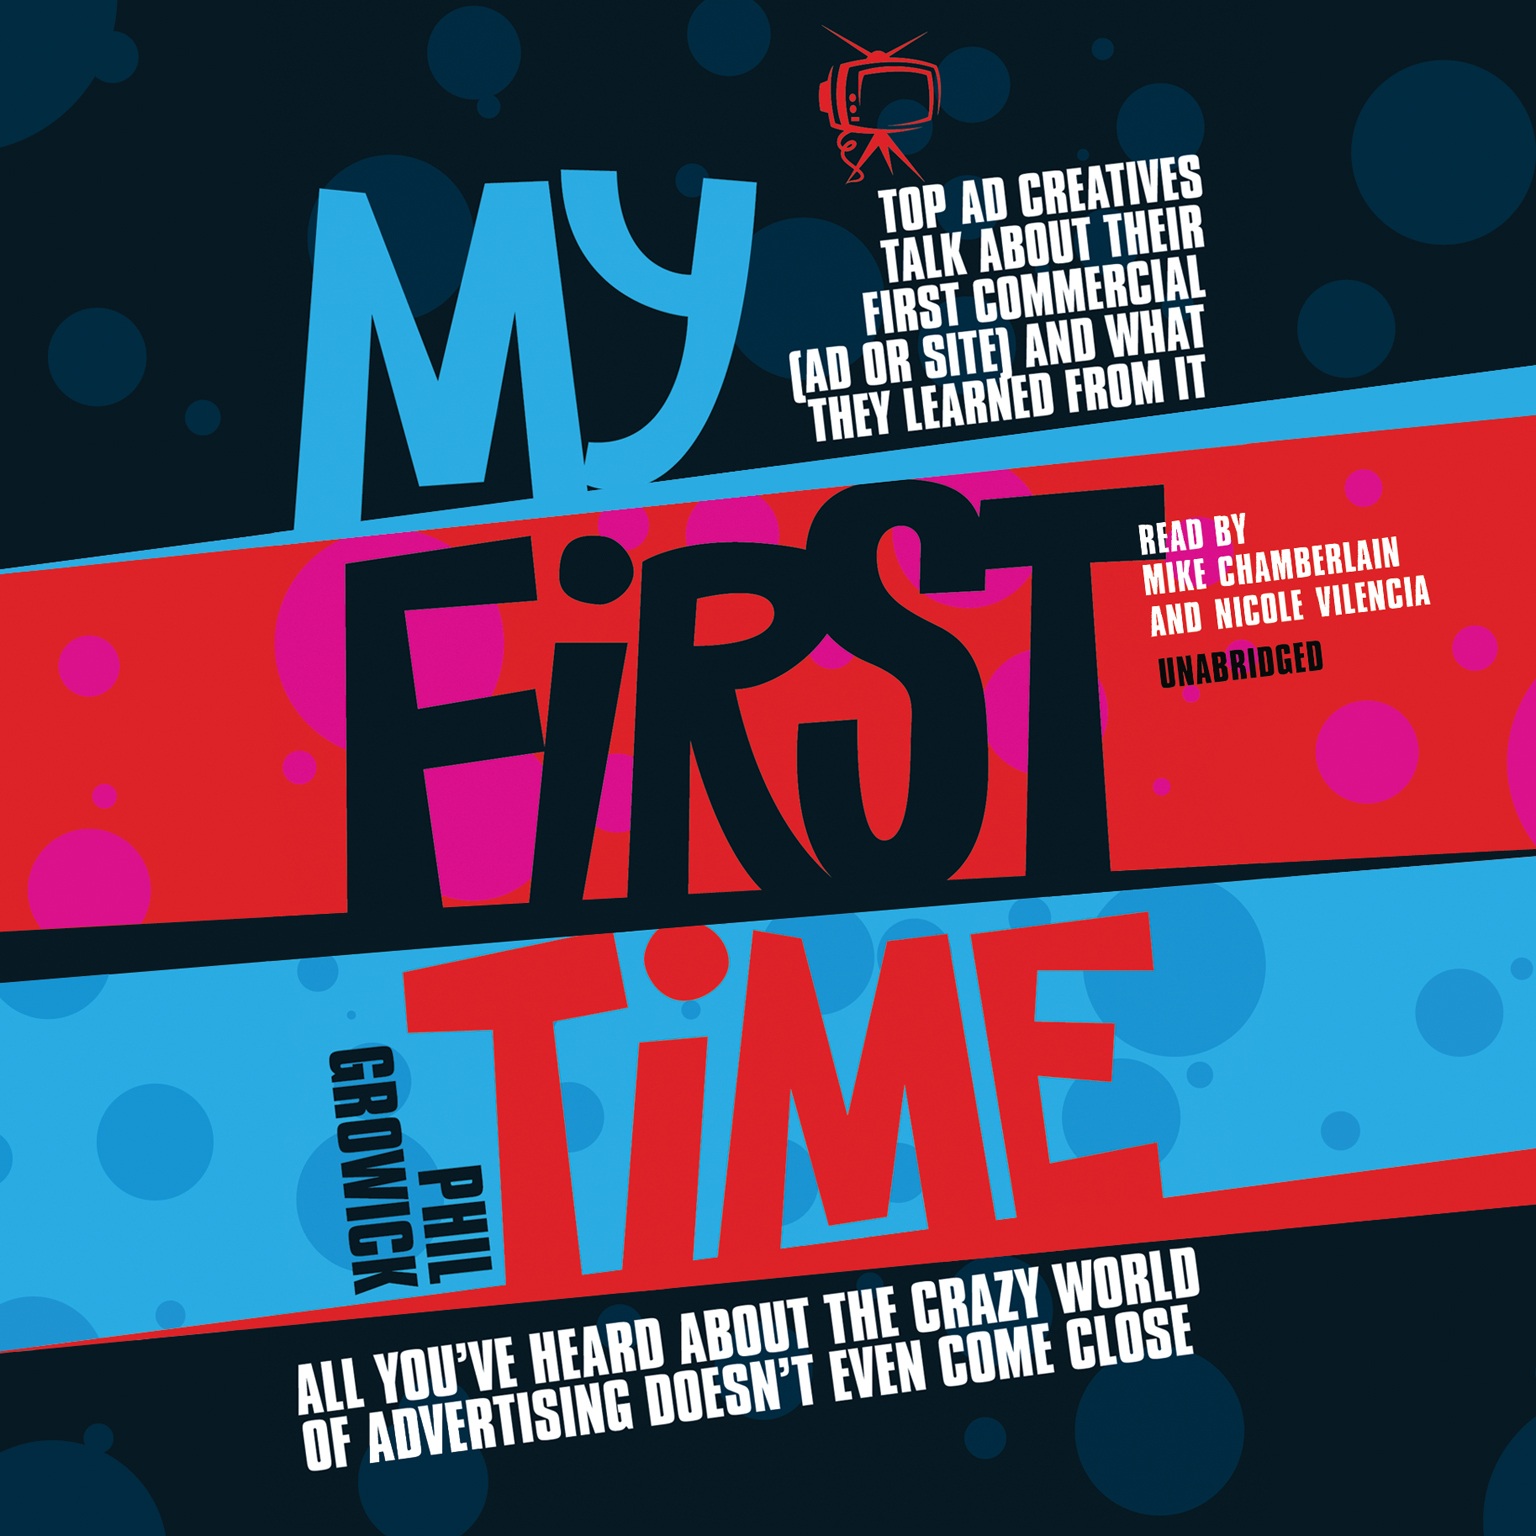 Printable My First Time: Top Ad Creatives Talk about Their First Commercial (Ad or Site) and What They Learned from It Audiobook Cover Art